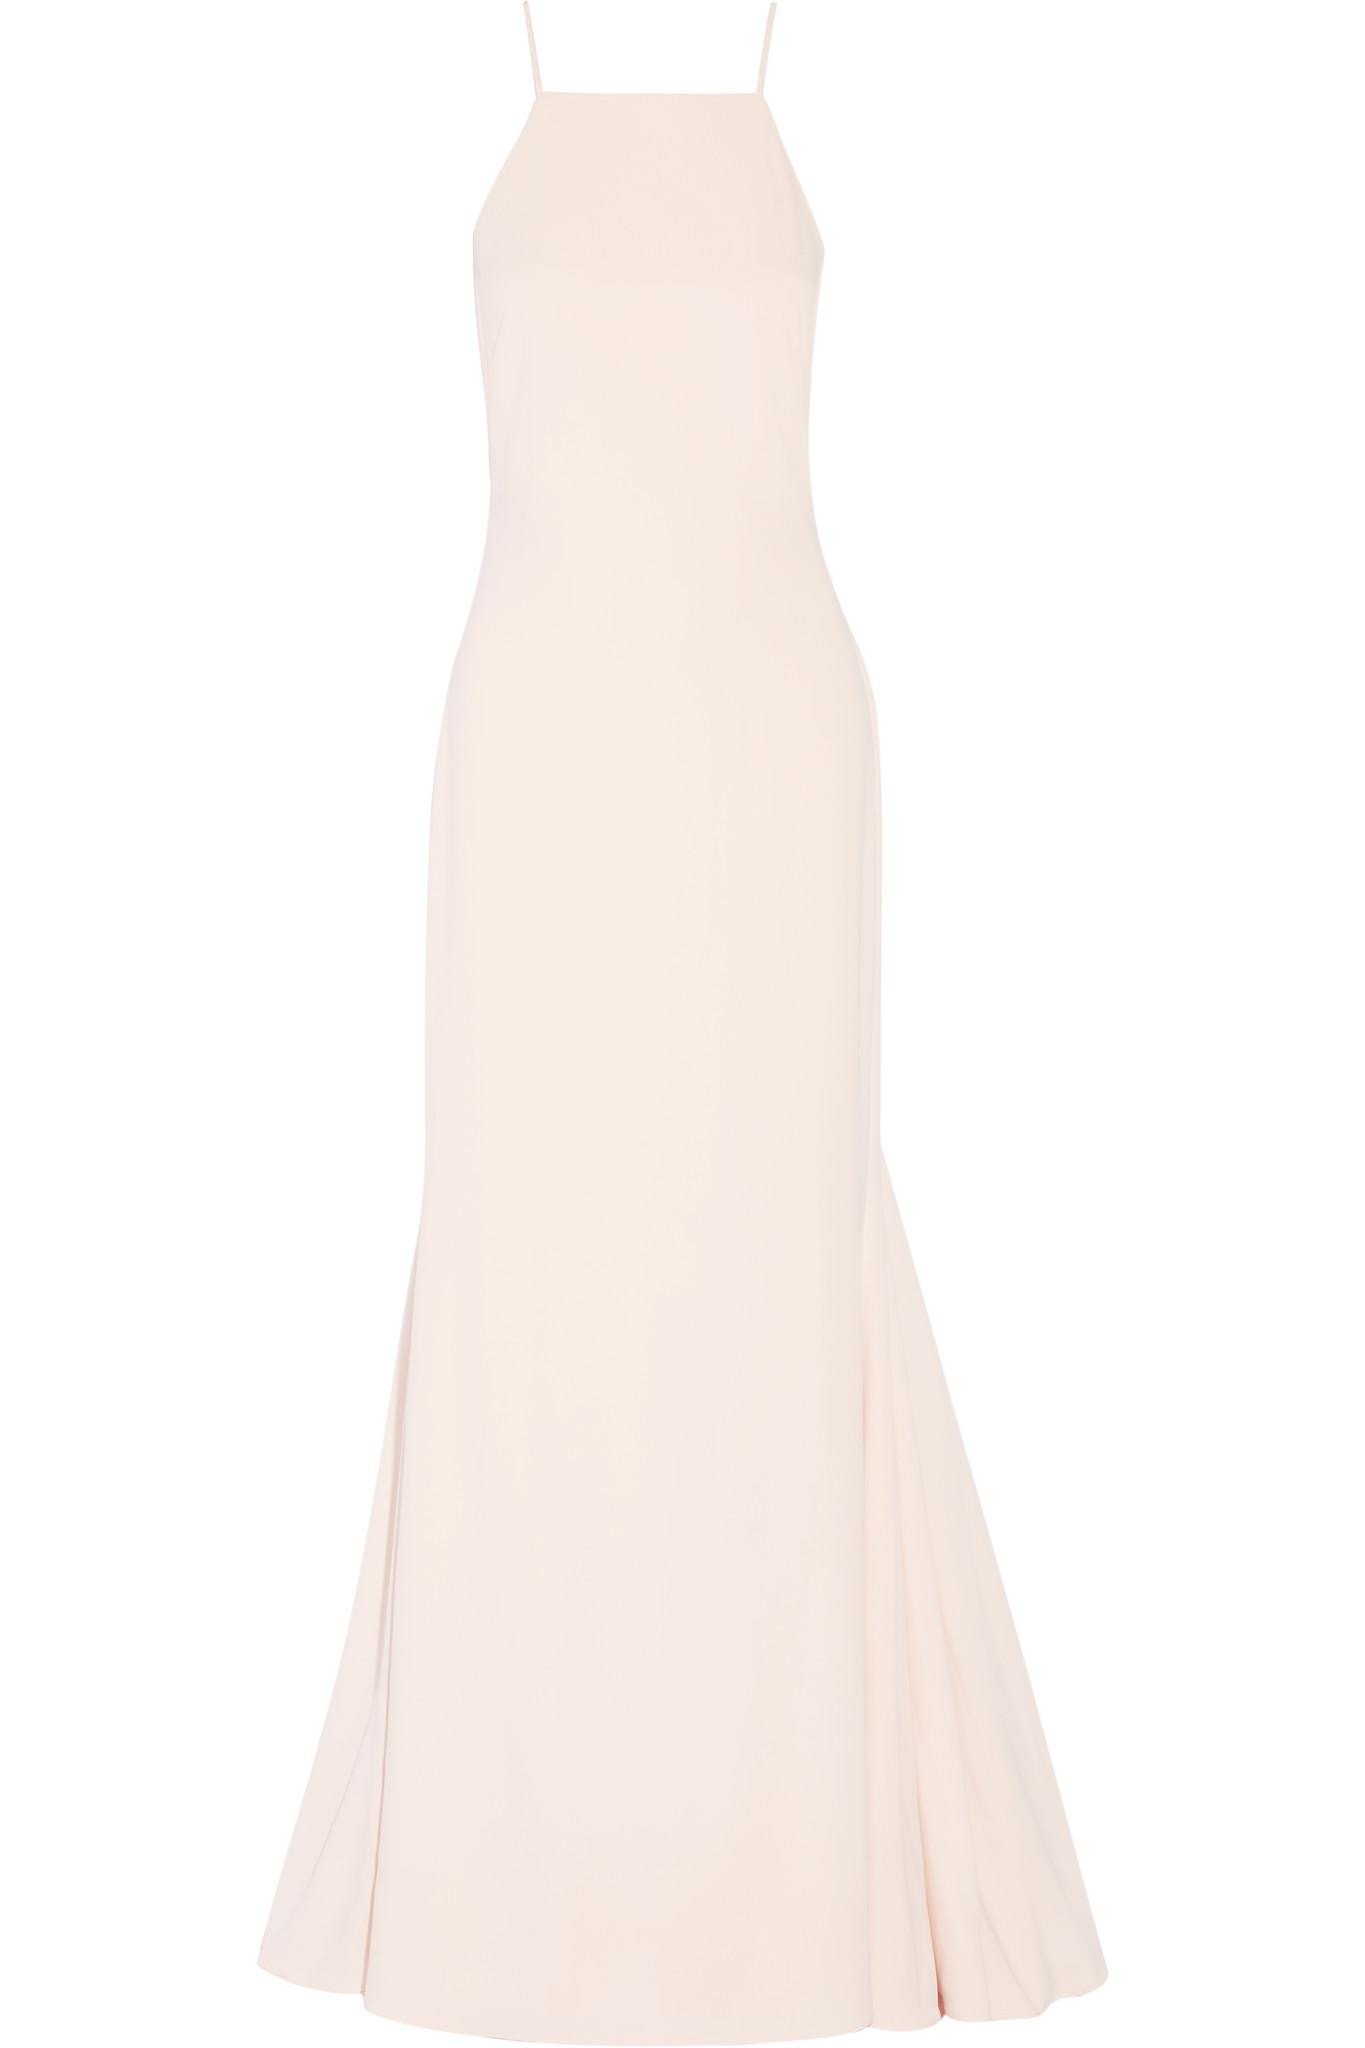 Dorable Badgley Mischka Pastel Petunia Gown Photos - Wedding and ...